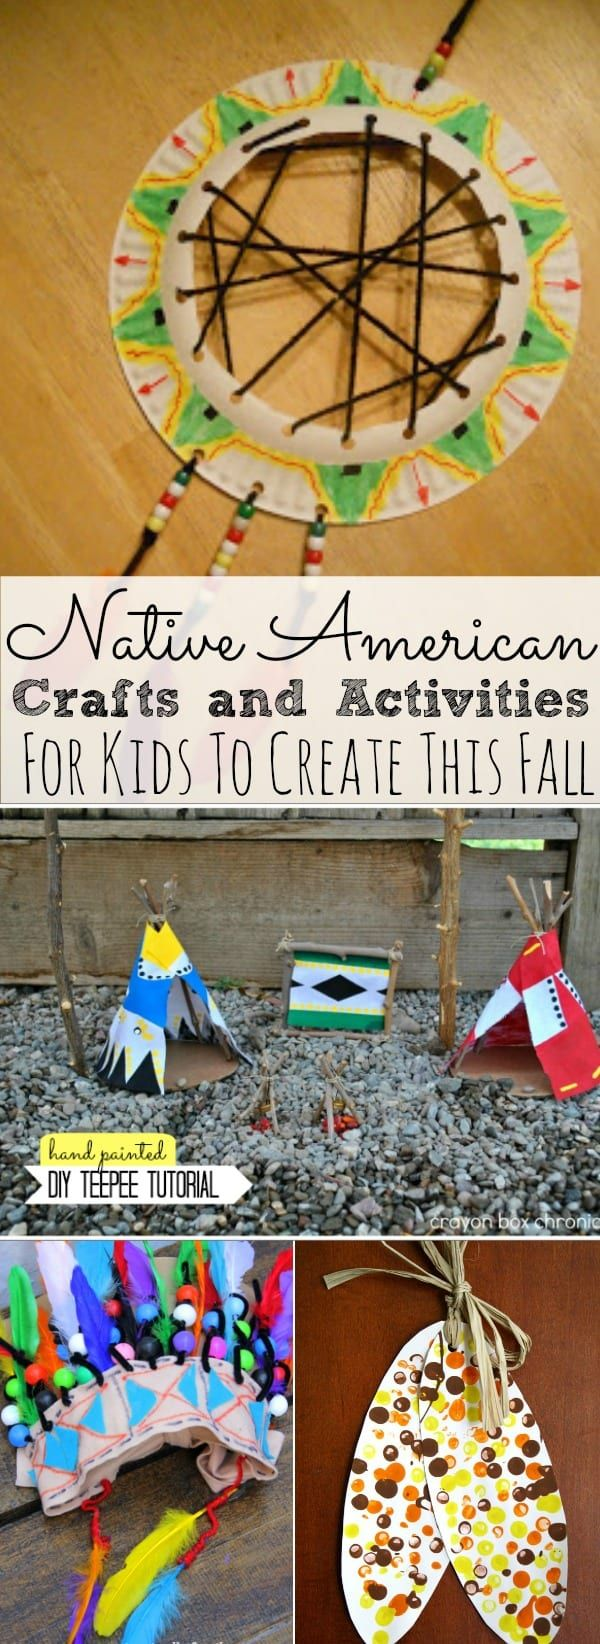 Native American Crafts and Activities for Kids - Simply Today LIfe